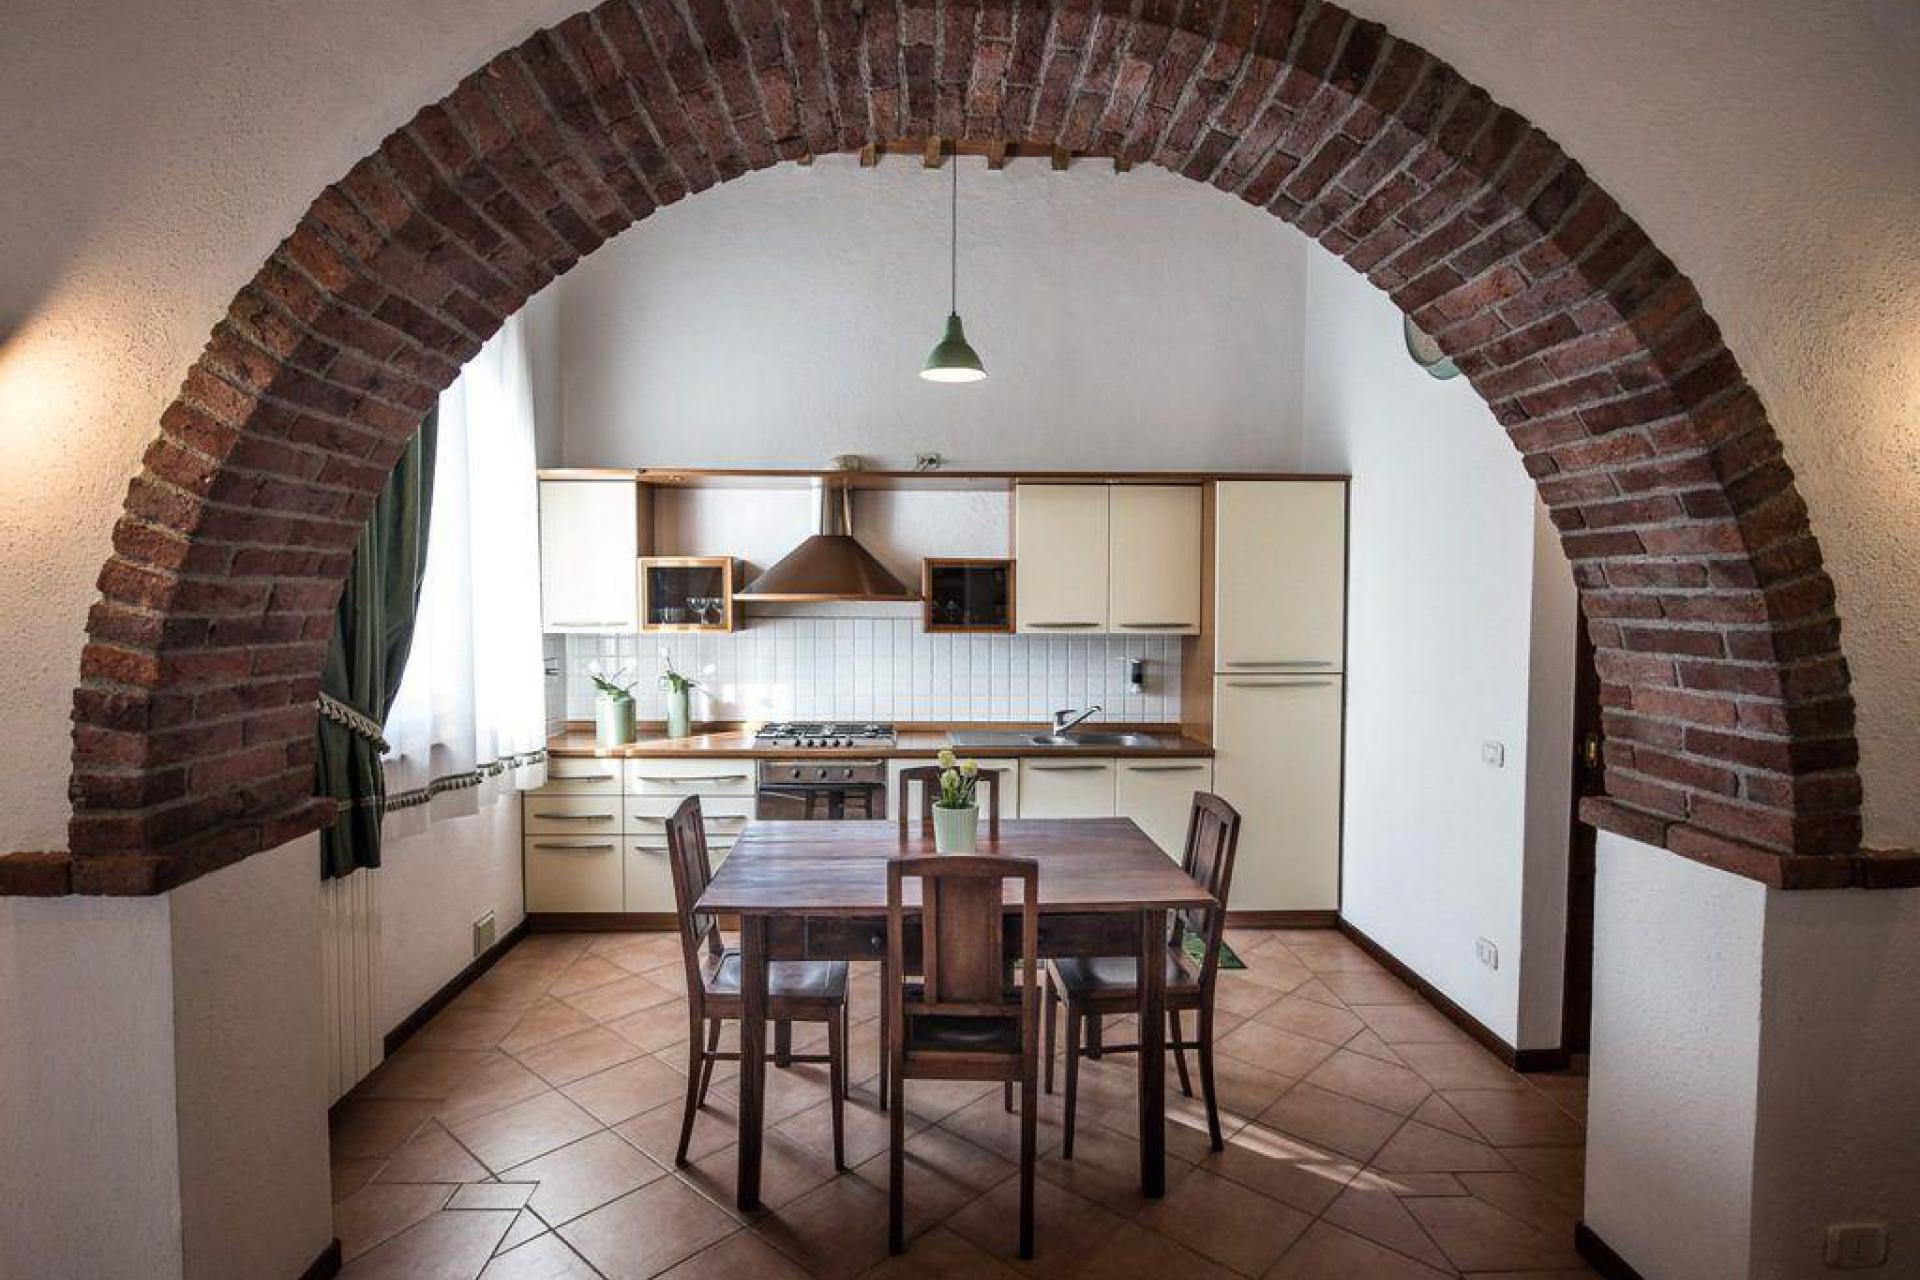 Agriturismo Toscane Agriturismo in voormalig klooster in zuid-Toscane | myitaly.nl